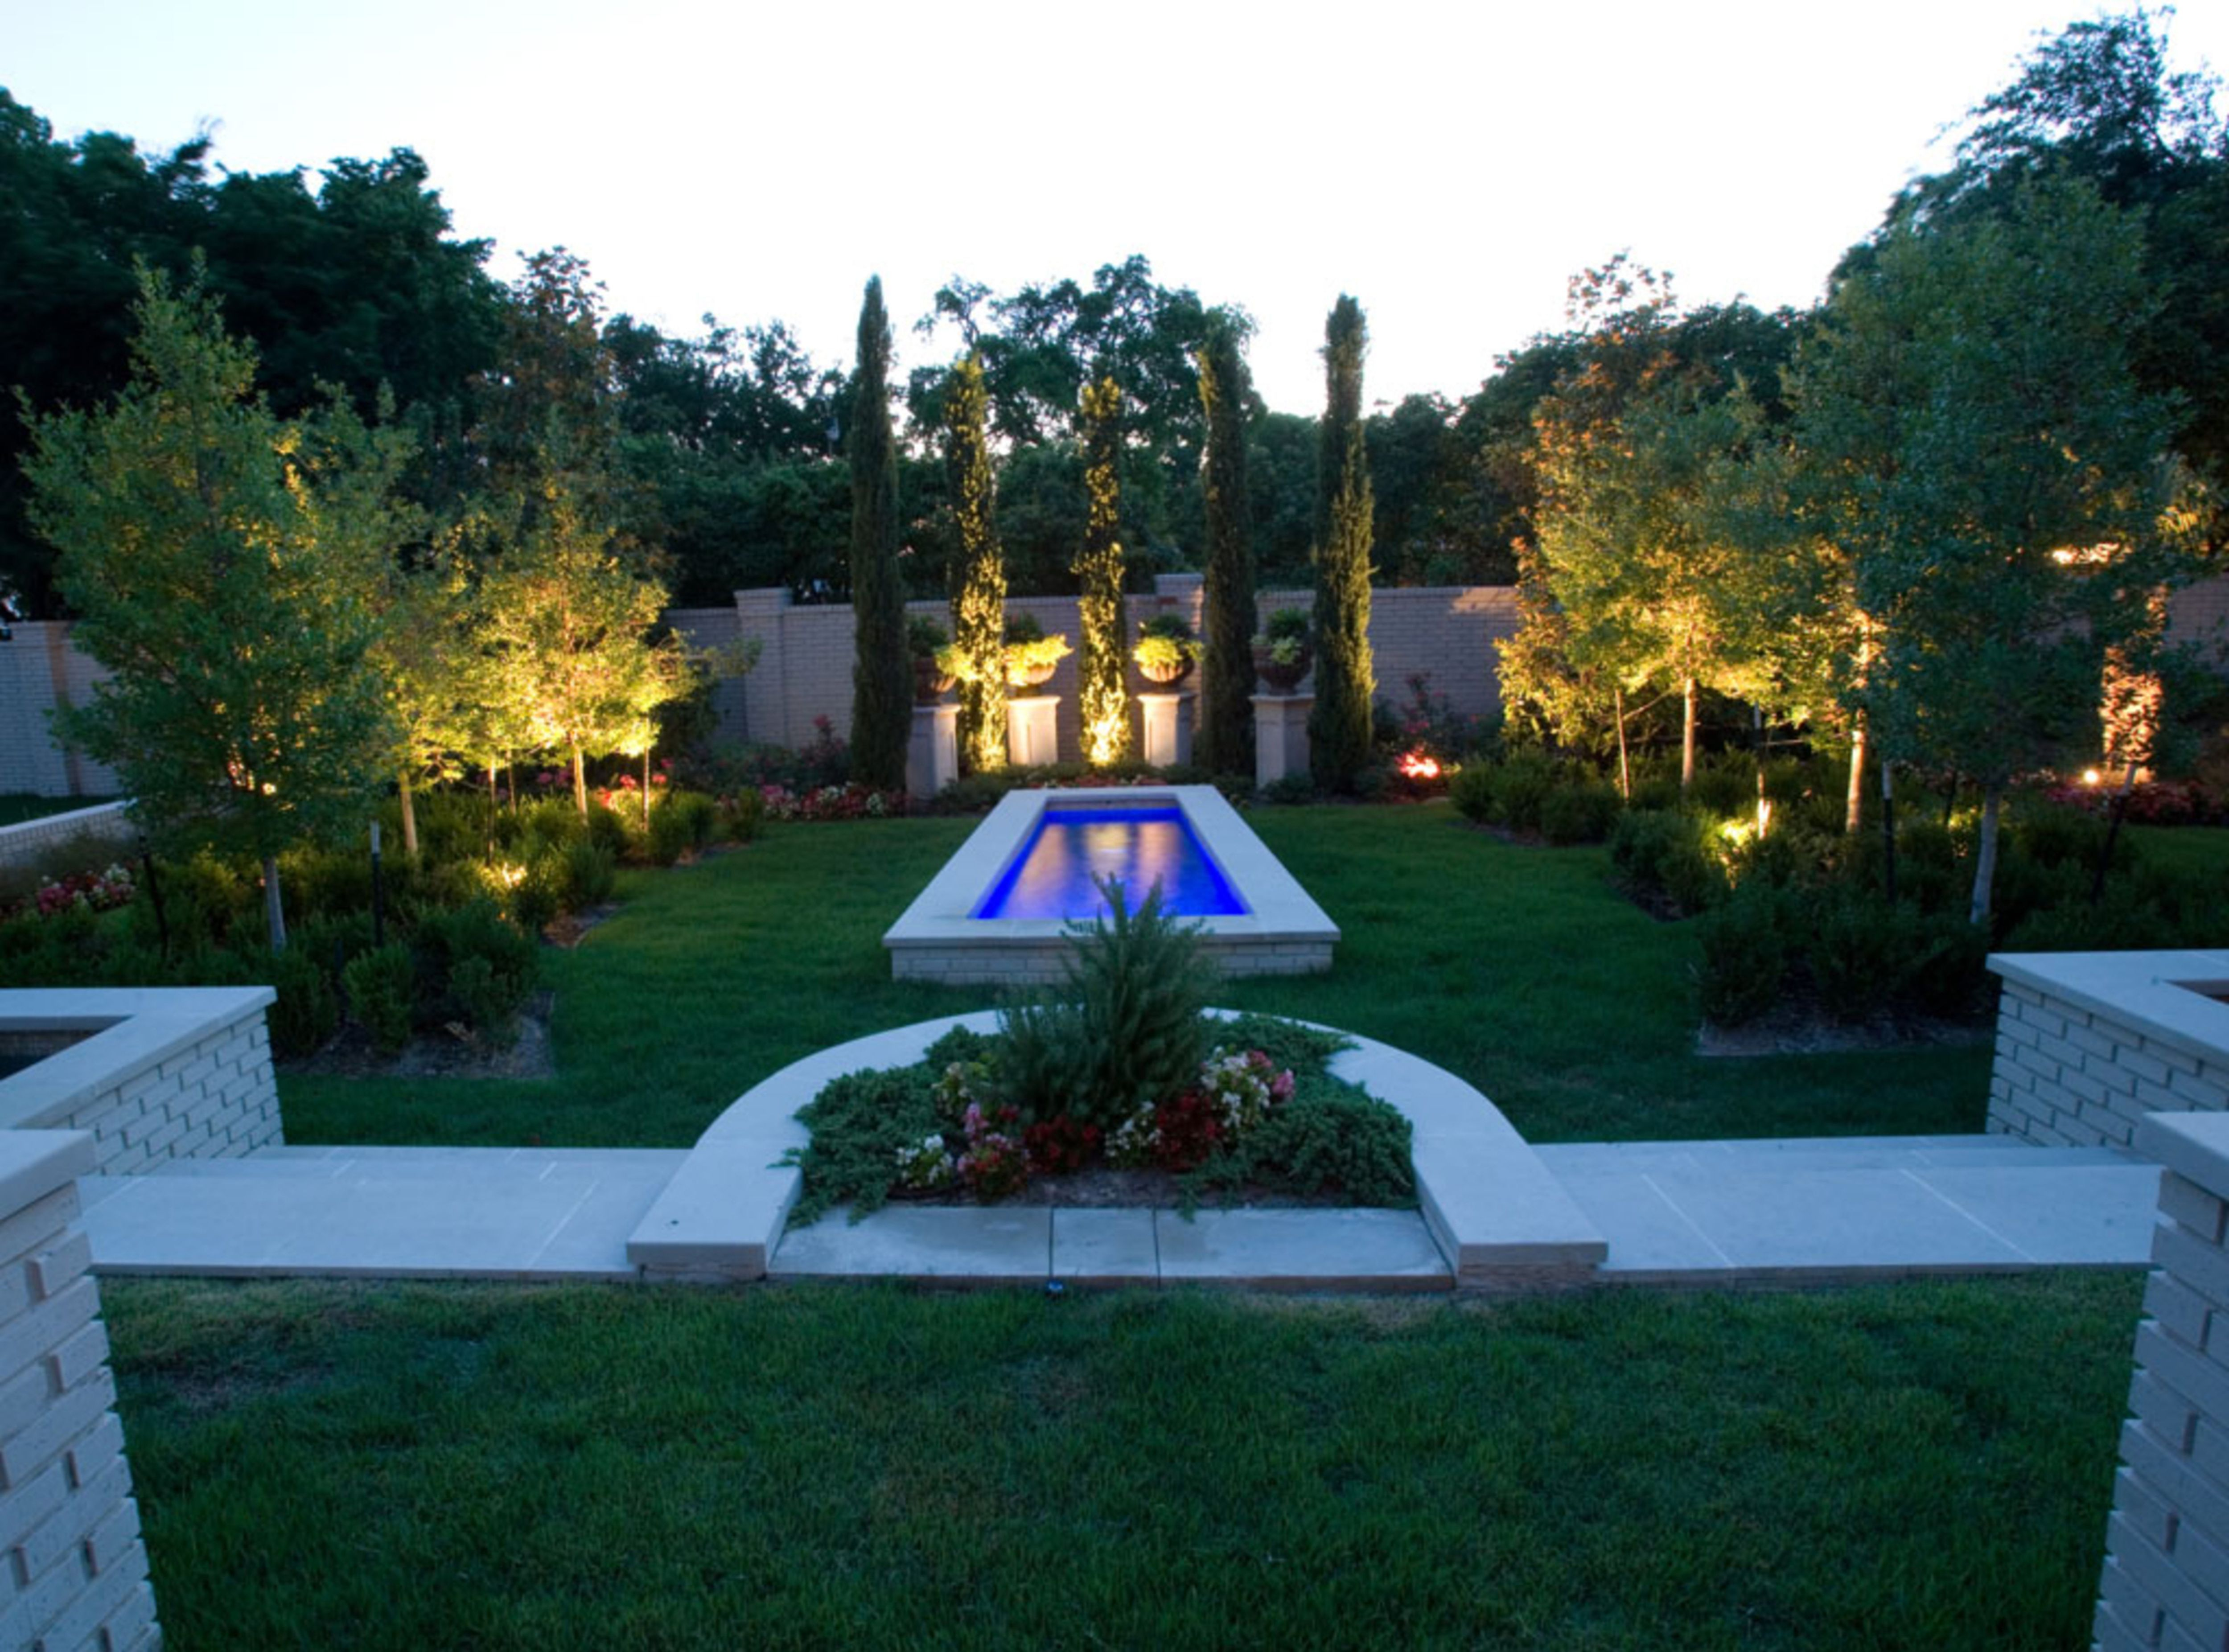 Cool landscaping ideas for front of house insight inspiring garden cool landscaping ideas for front of house insight inspiring garden aloadofball Image collections